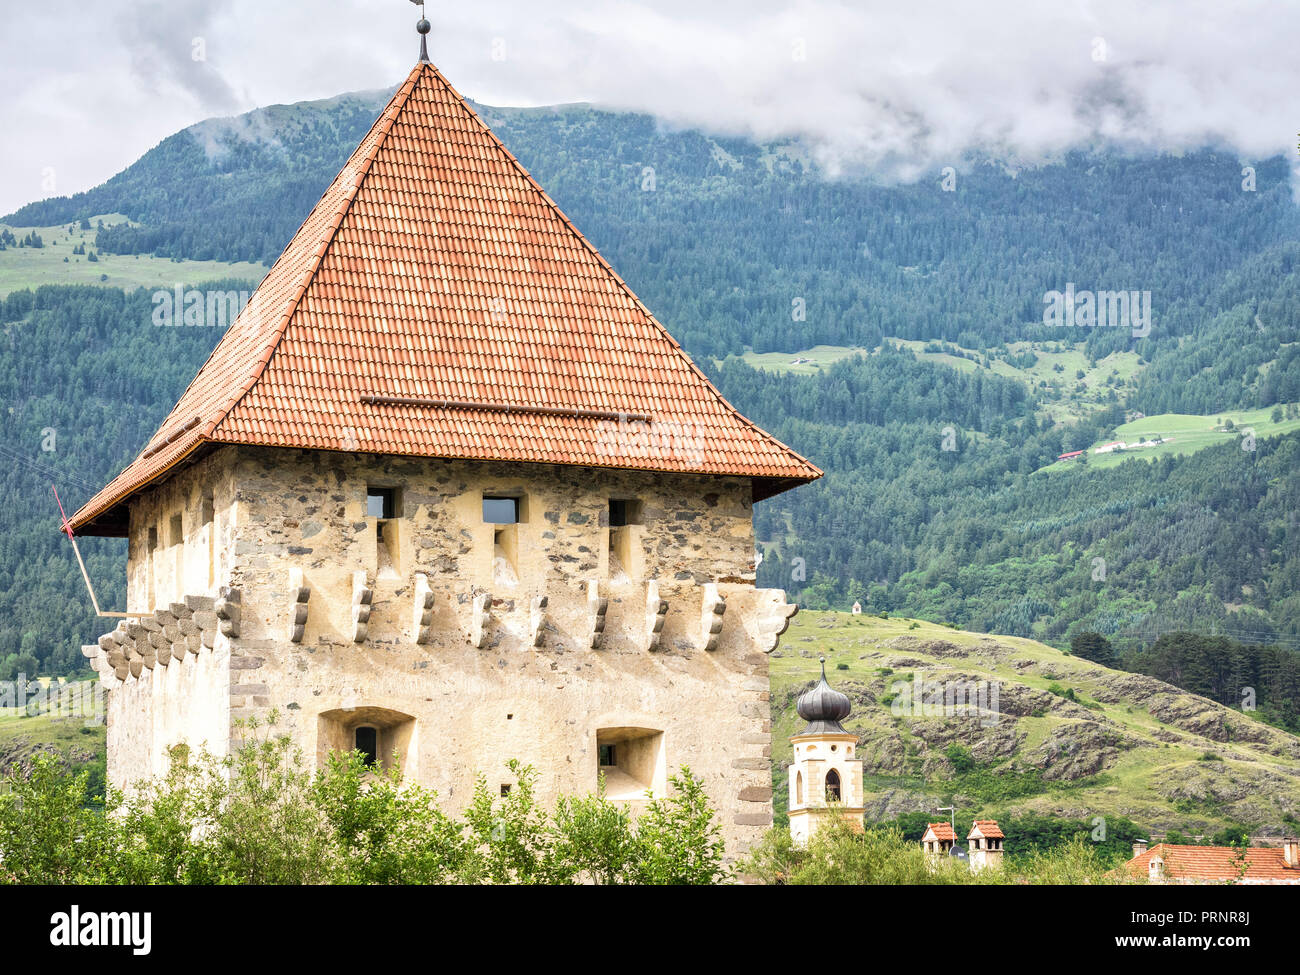 Glorenza (Glums) in South Tyrol/Trentino Alto Adige, Italy. Church tower with the city walls - Stock Image